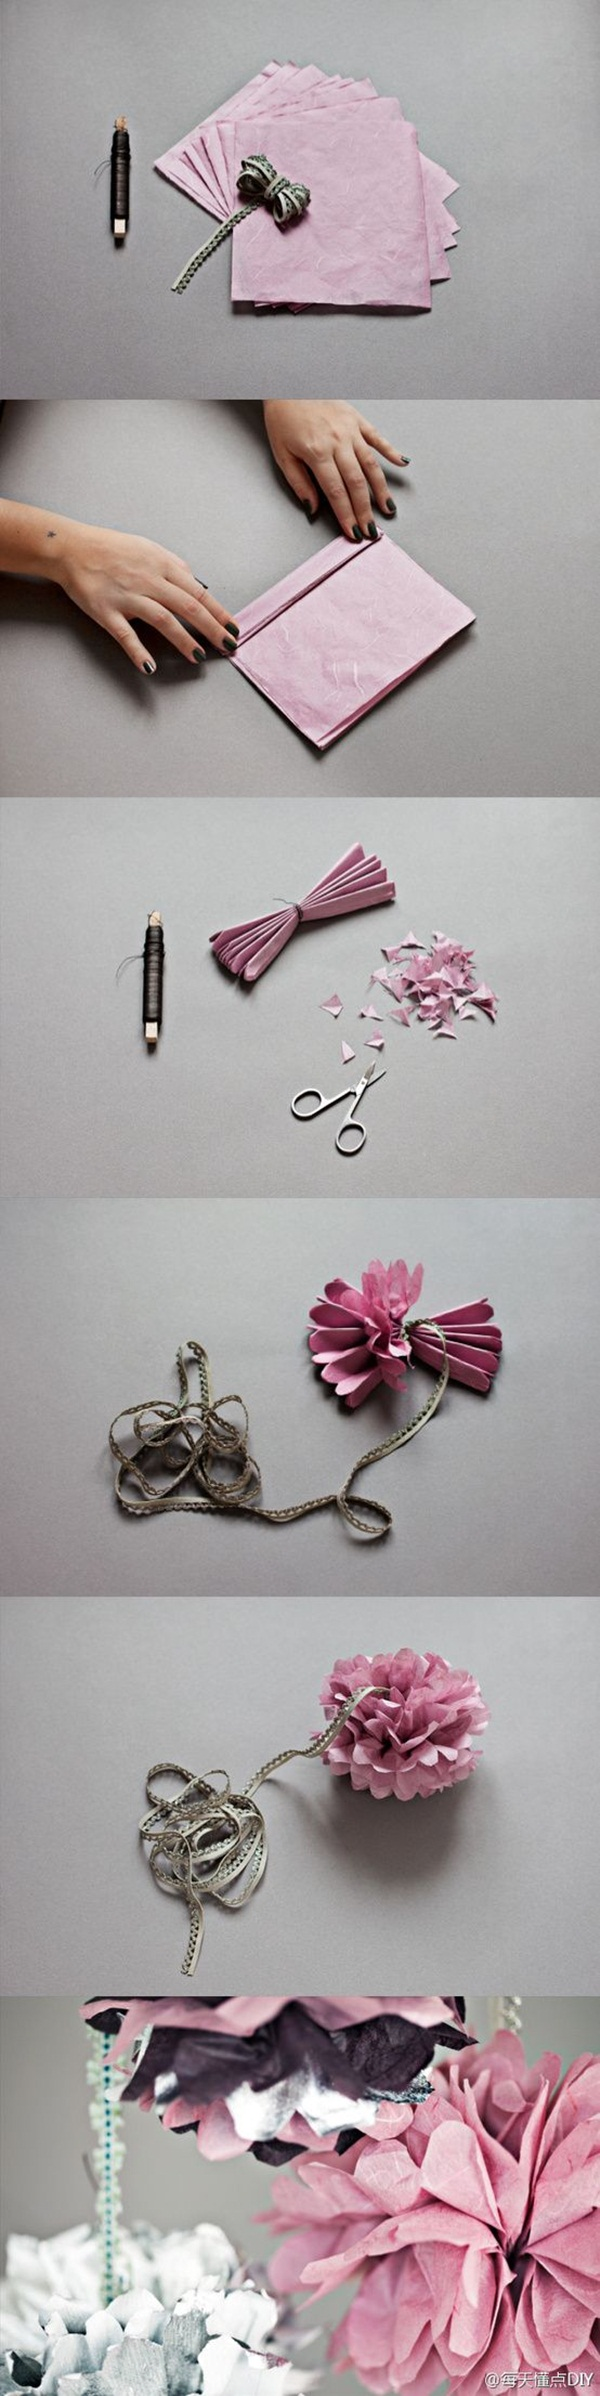 Paper Craft Ideas15